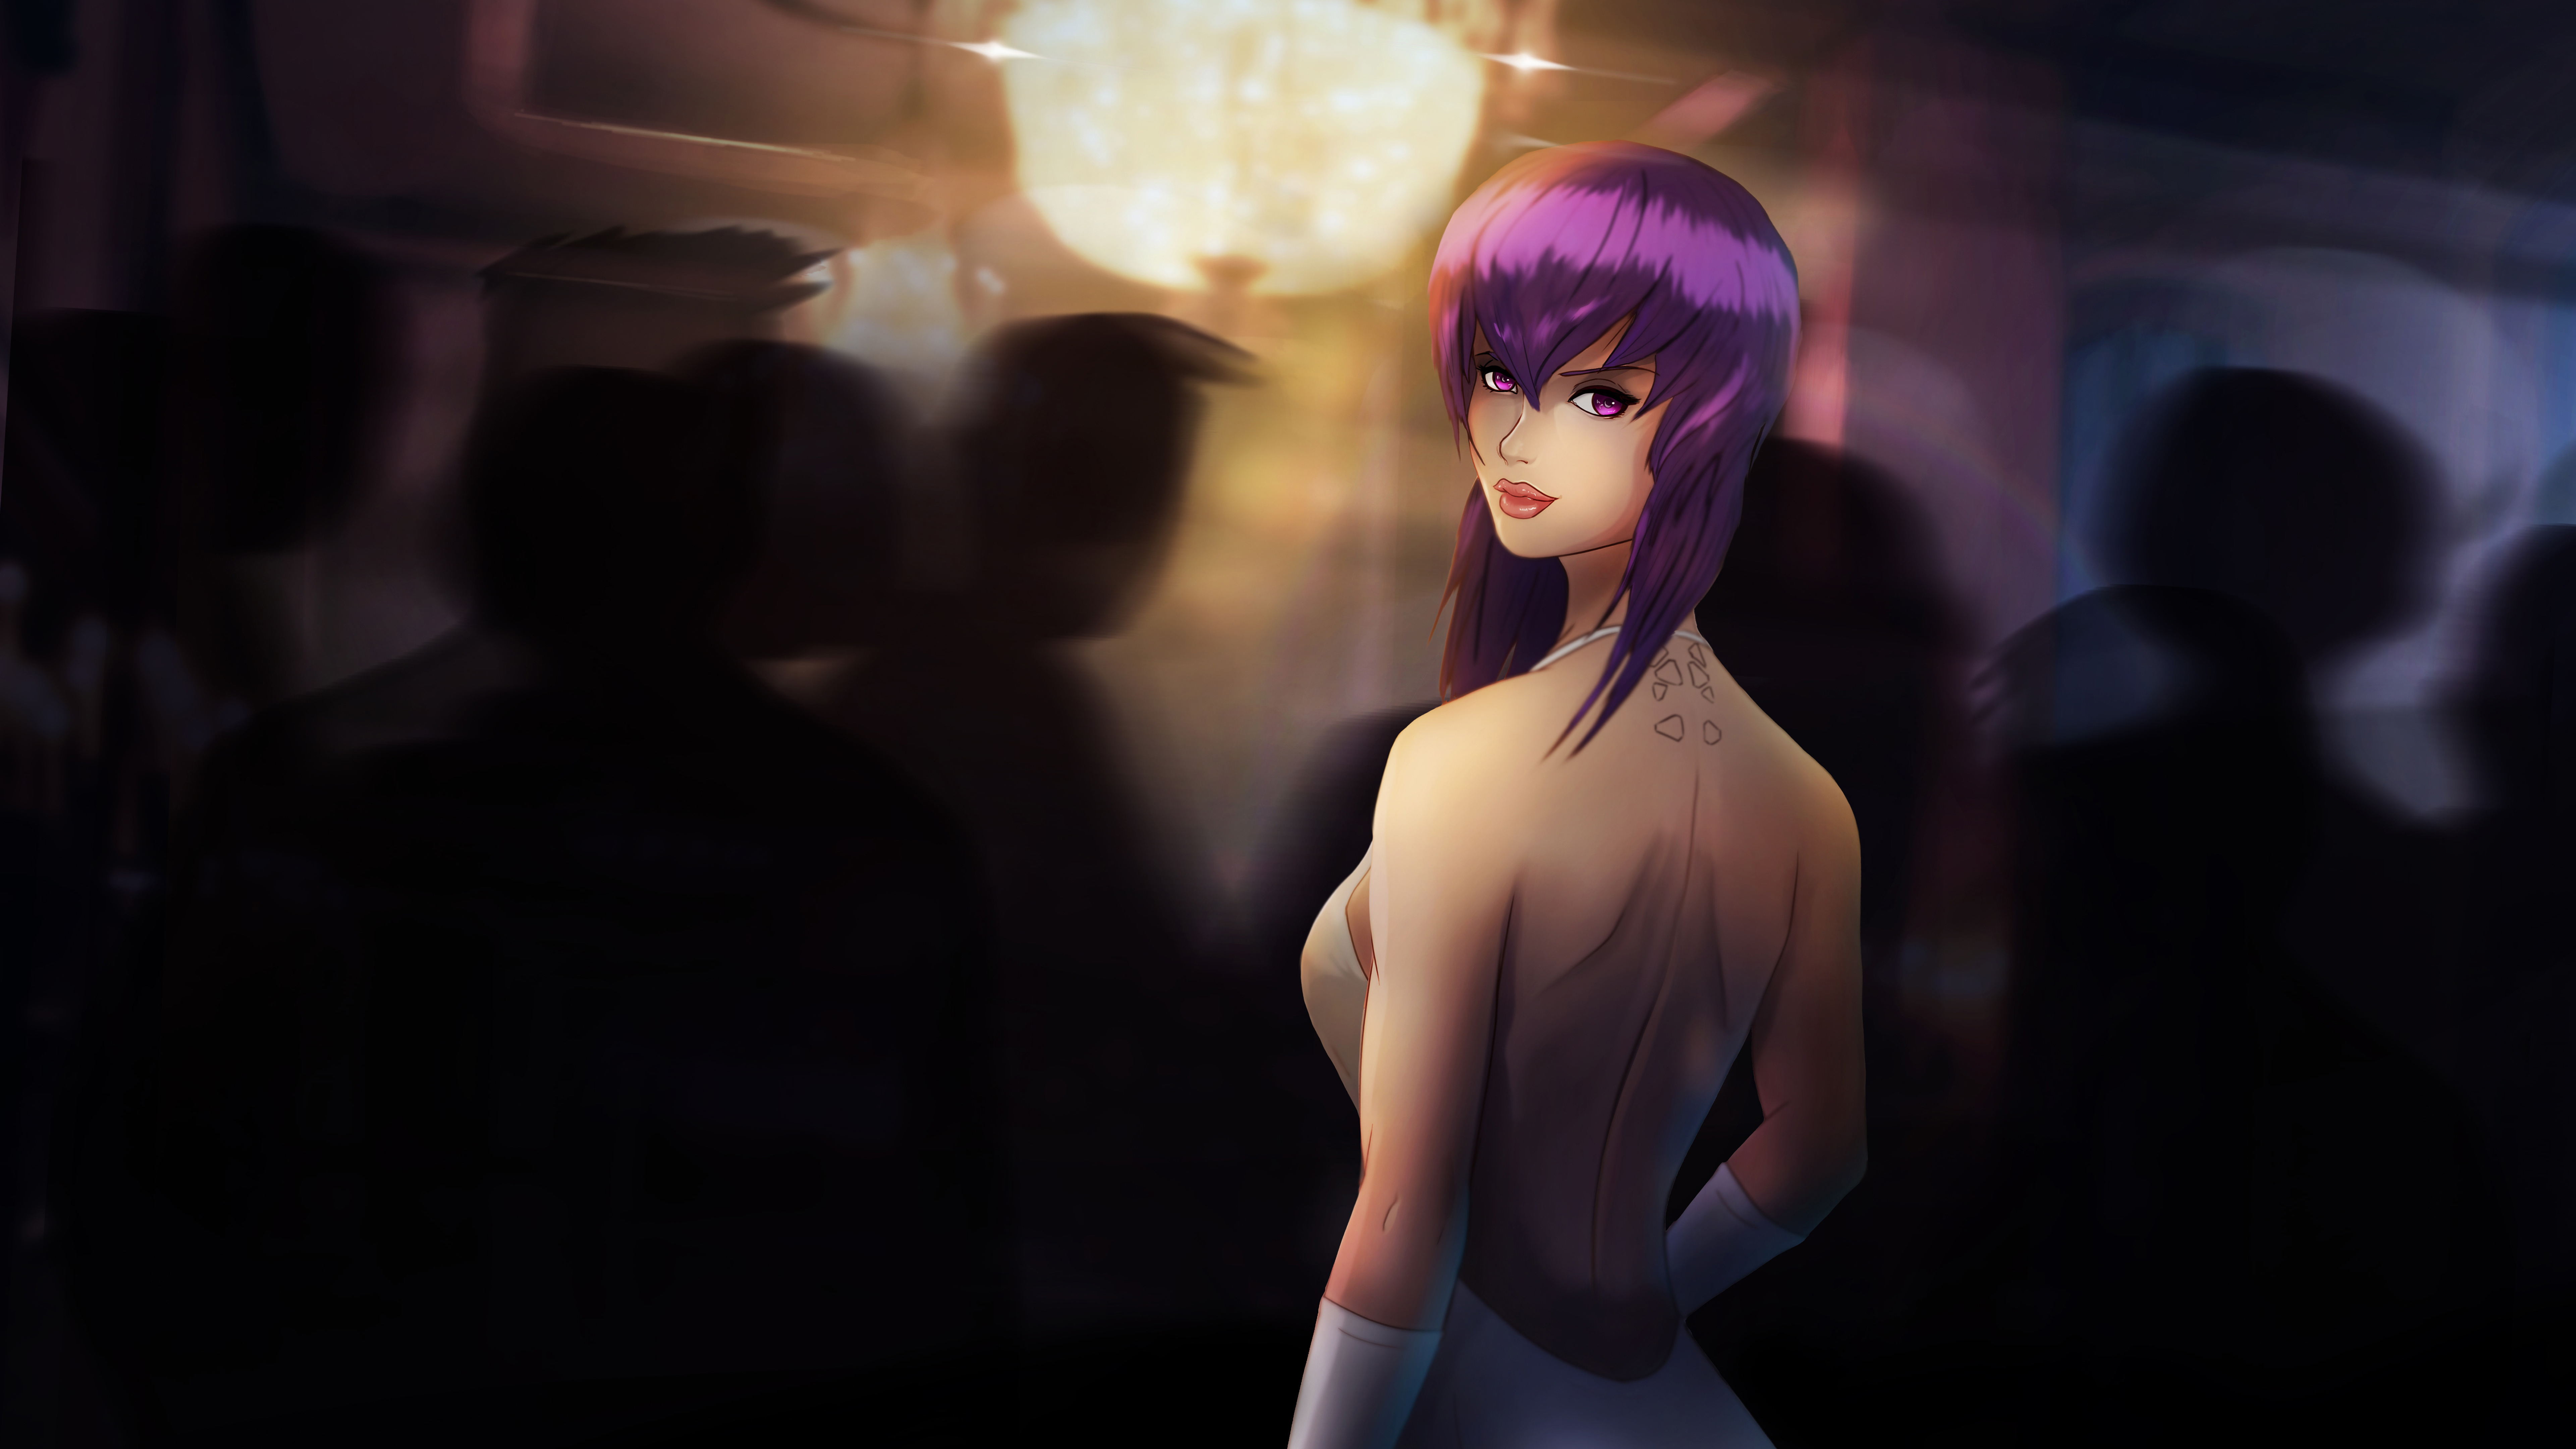 7680x4320 Ghost In The Shell Anime 8k Wallpaper Hd Anime 4k